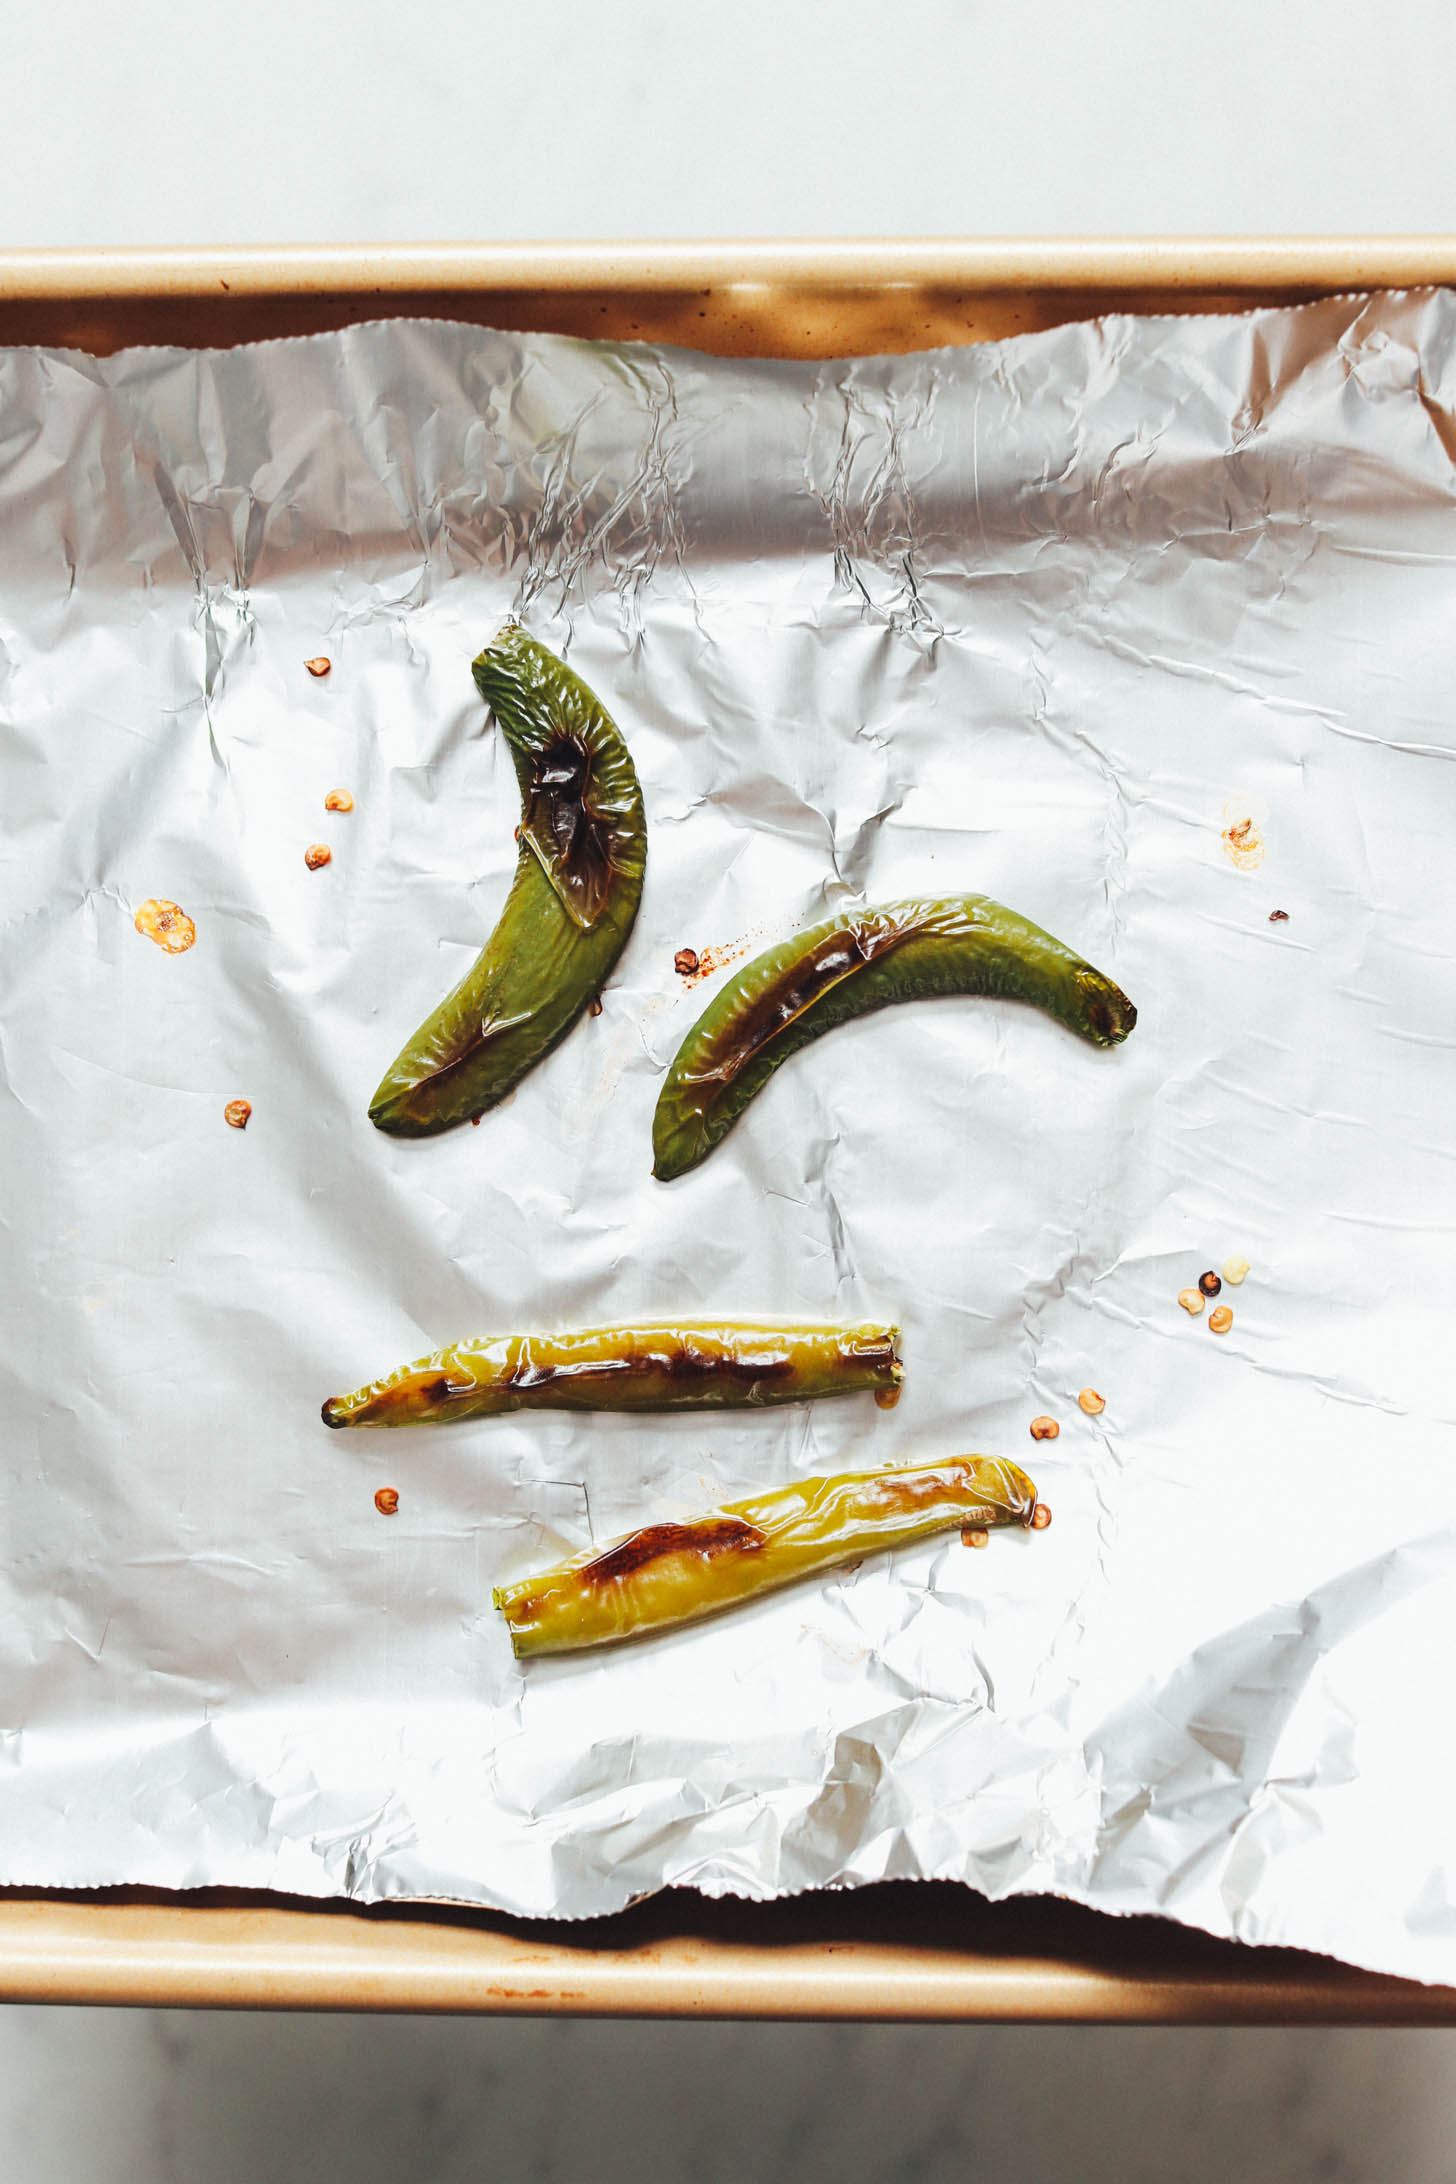 Roasted serrano peppers on a foil-lined baking sheet